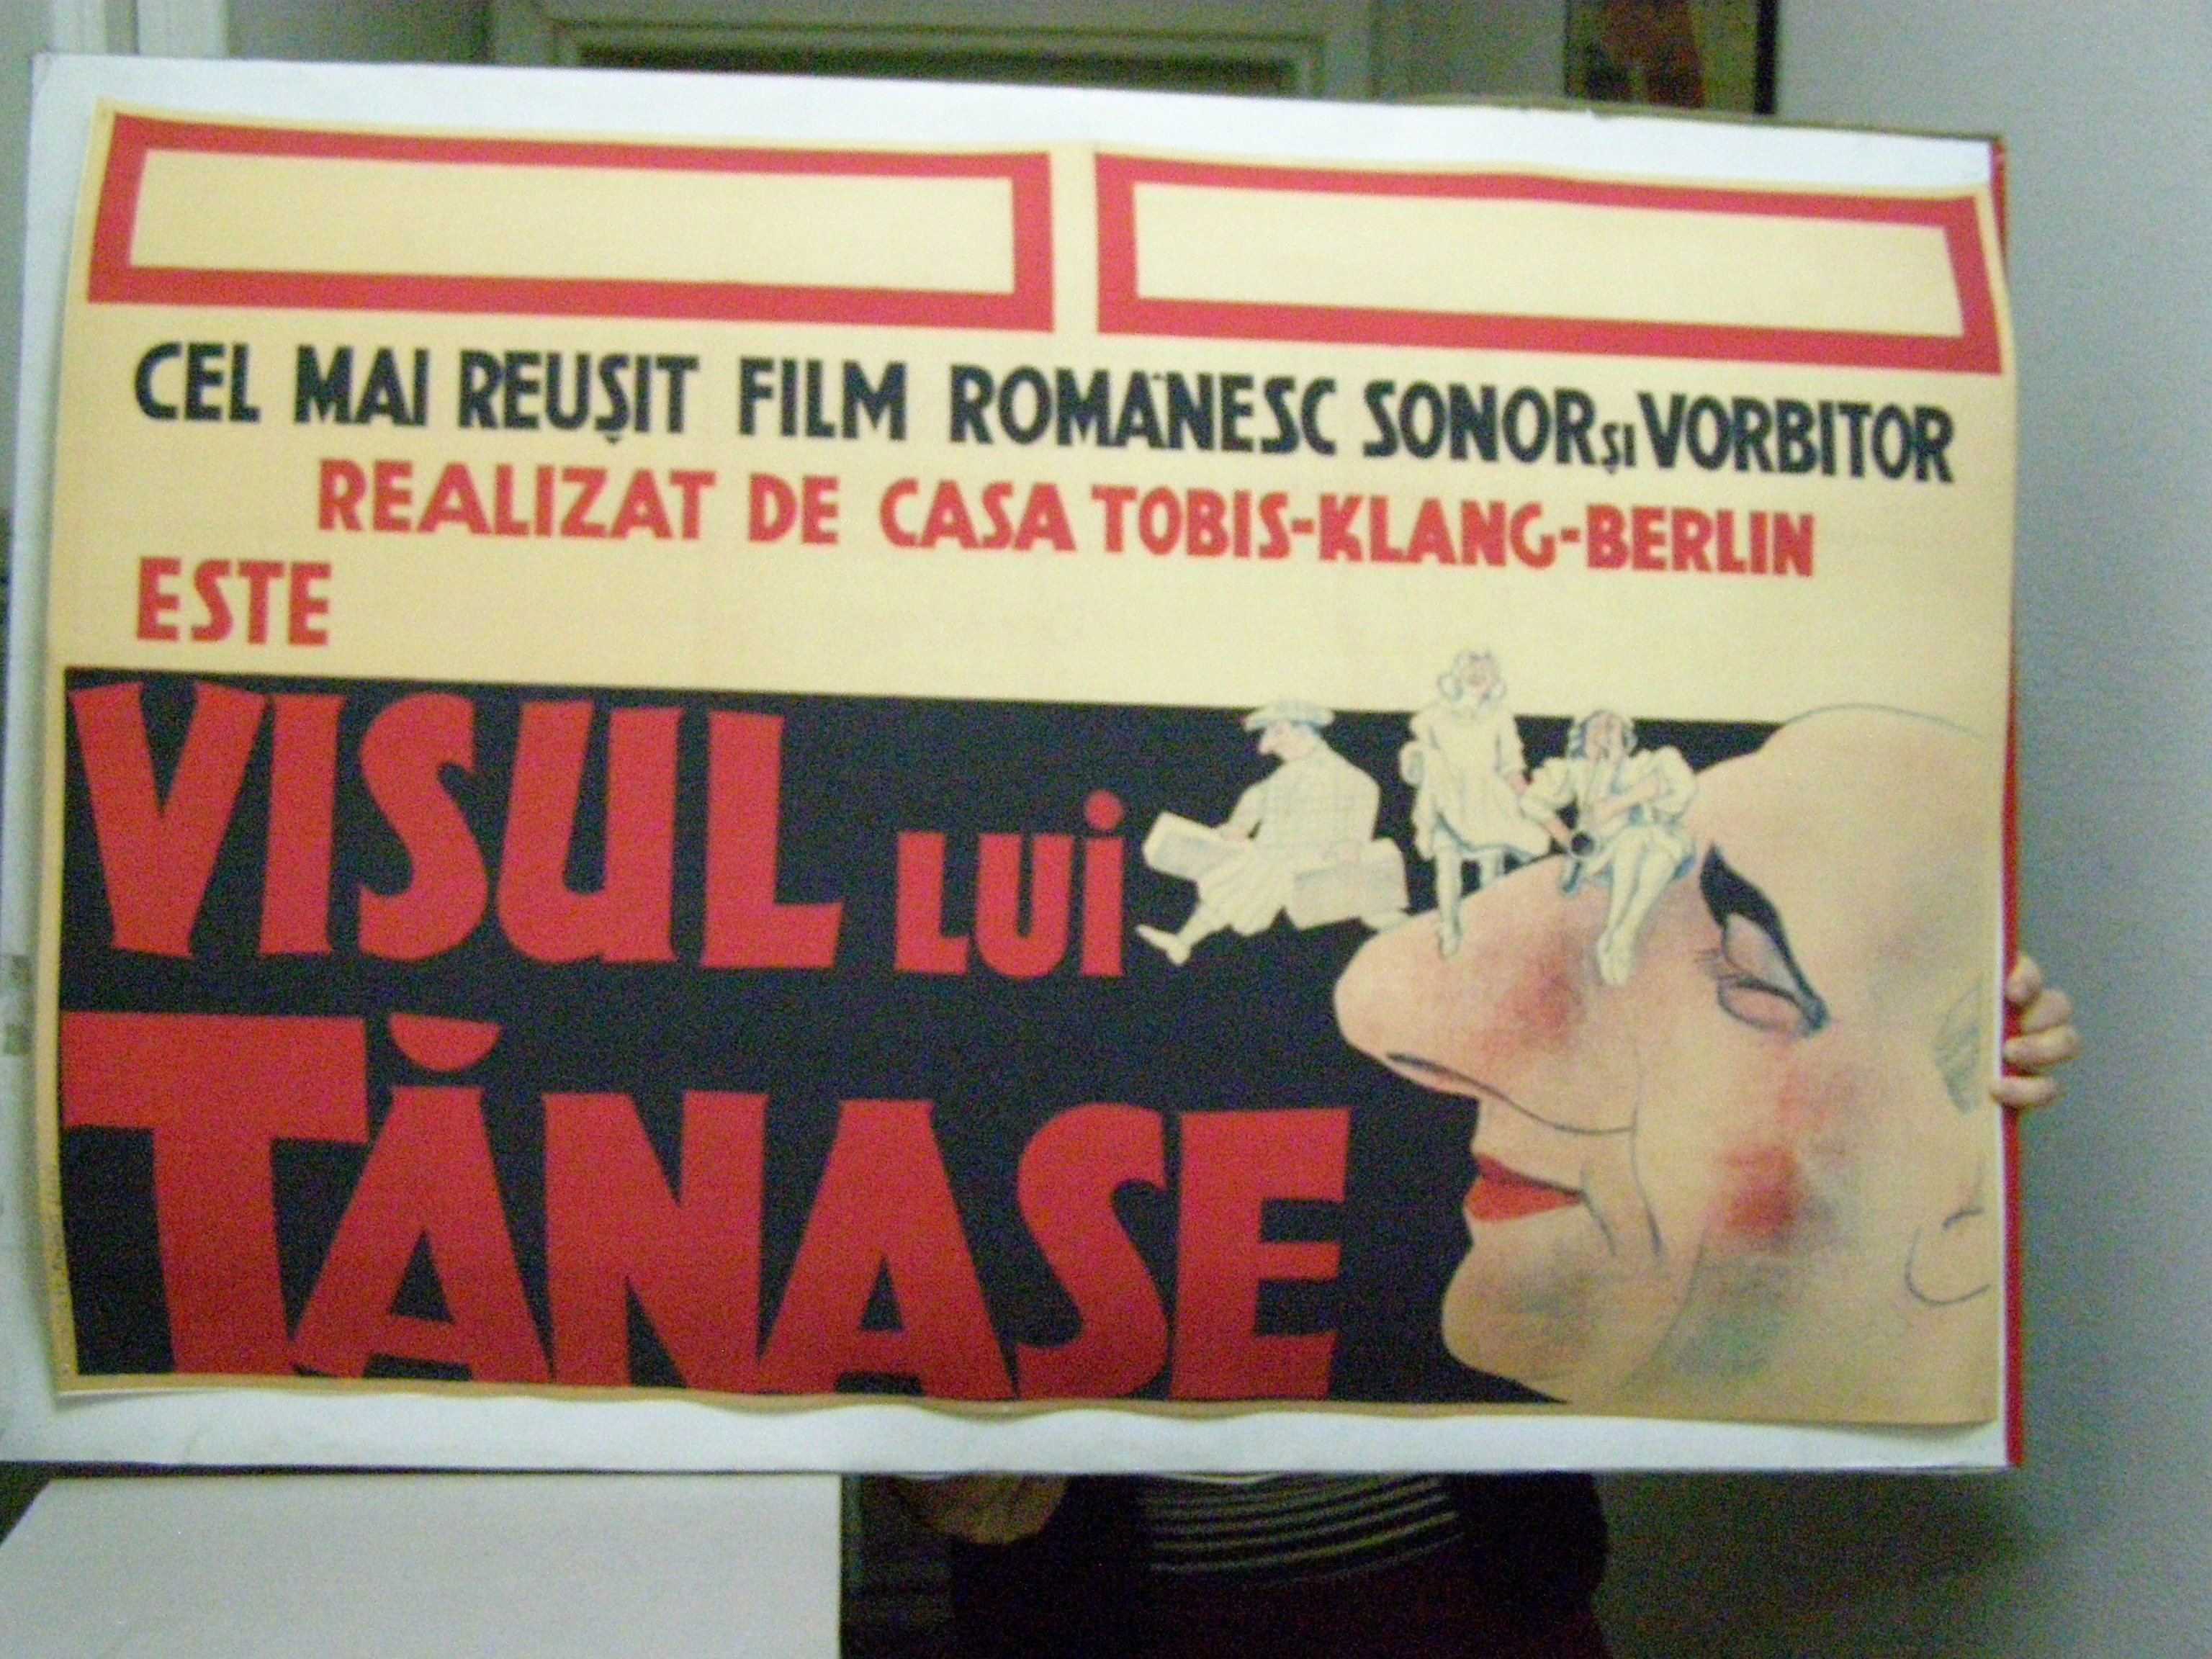 Advertisement for the Romanian feature film 'Visul lui Tănase', © Arhiva Naţională de Filme